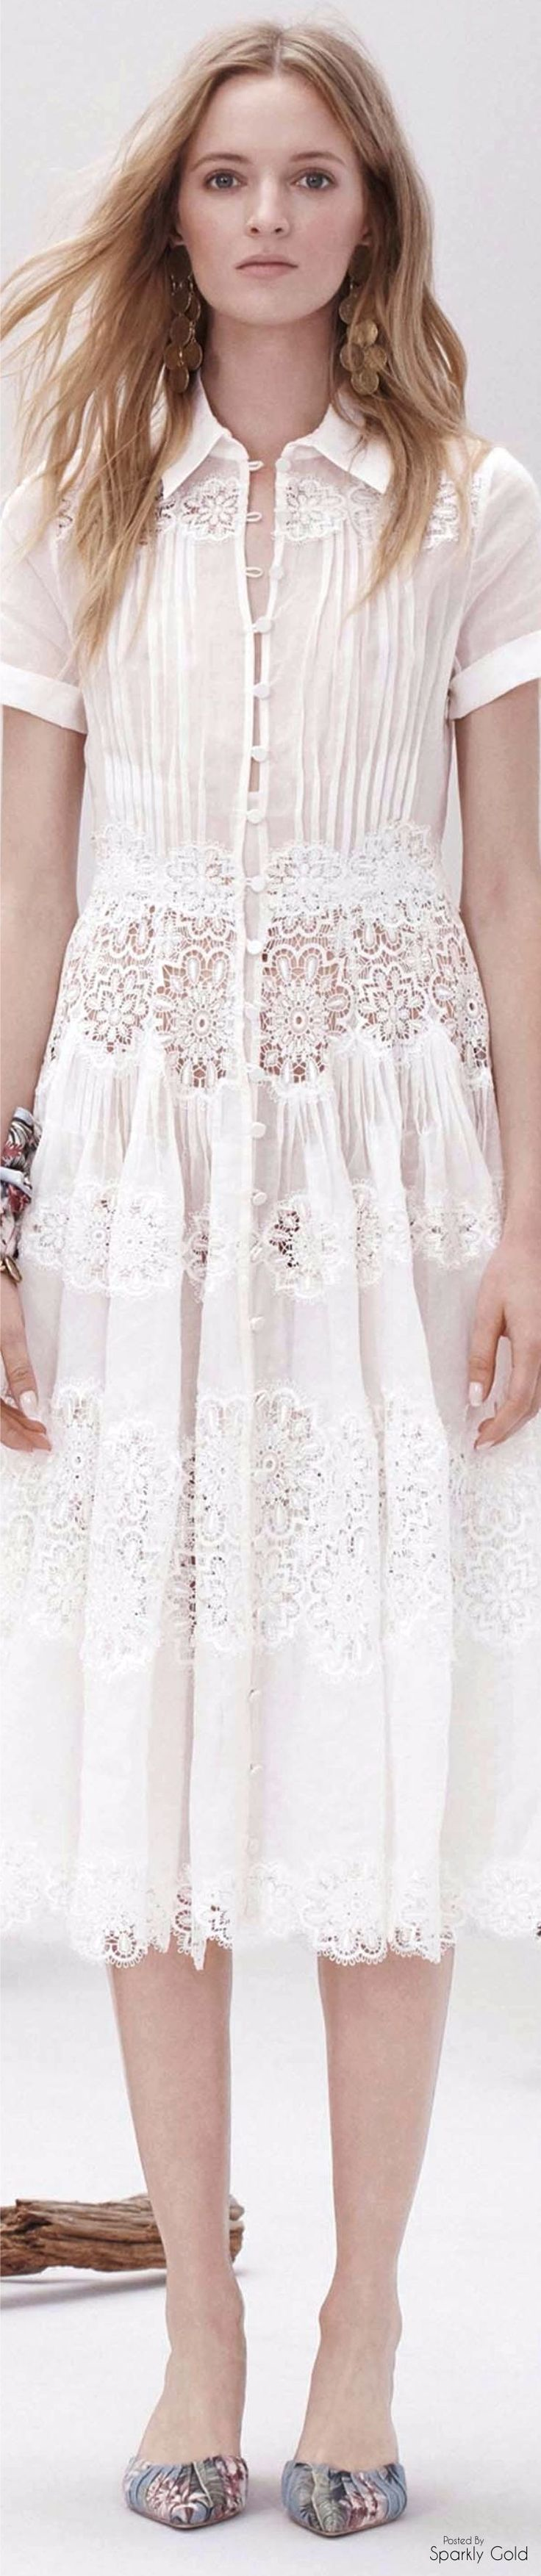 Zimmermann ~ Resort 2017 ..cotton & lace white dress..